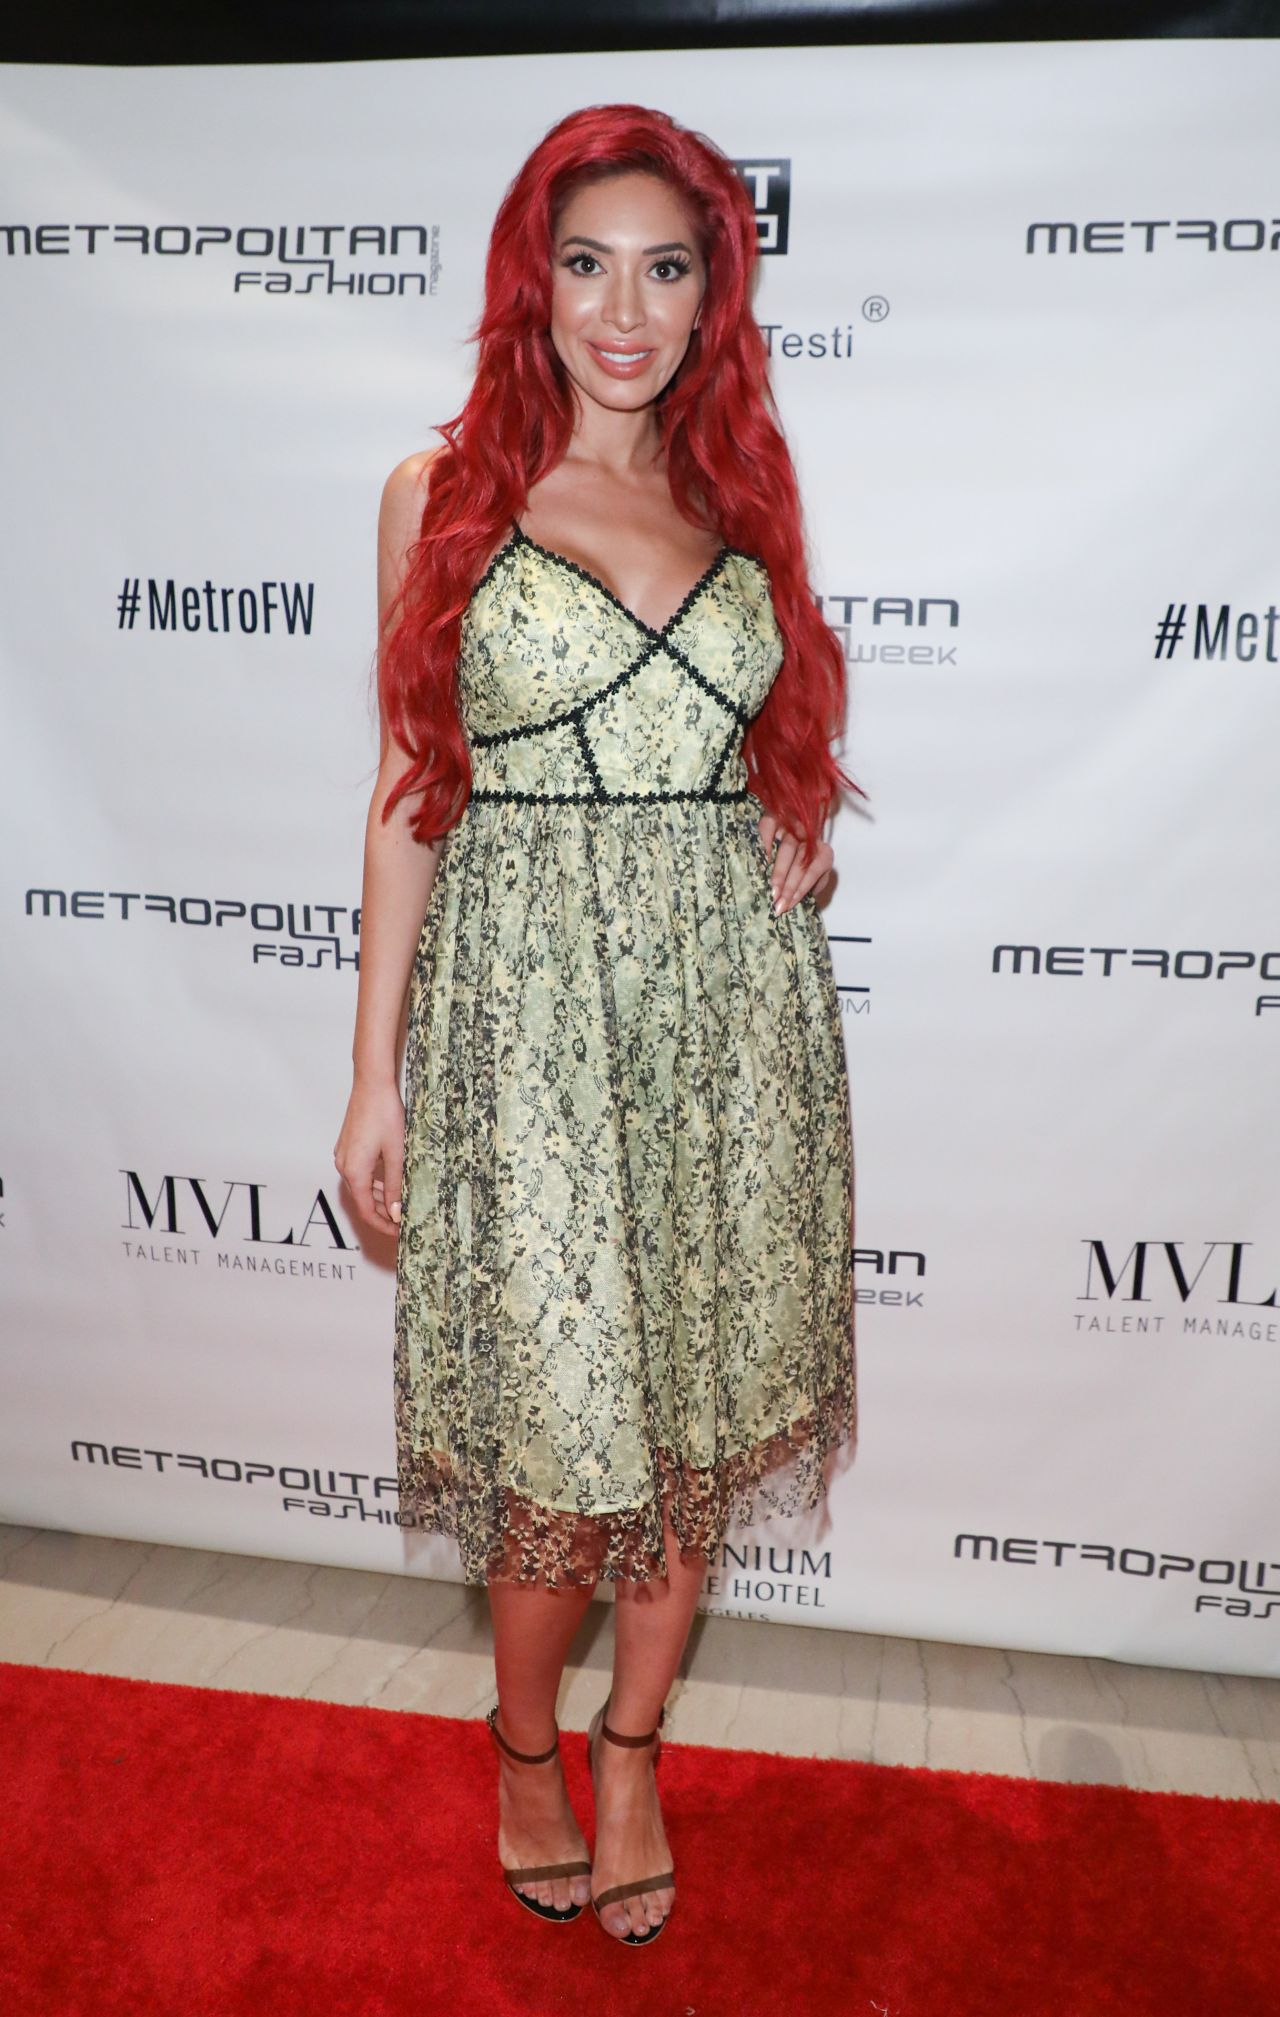 farrah-abraham-metropolitan-fashion-week-in-la-03-29-2018-5.jpg